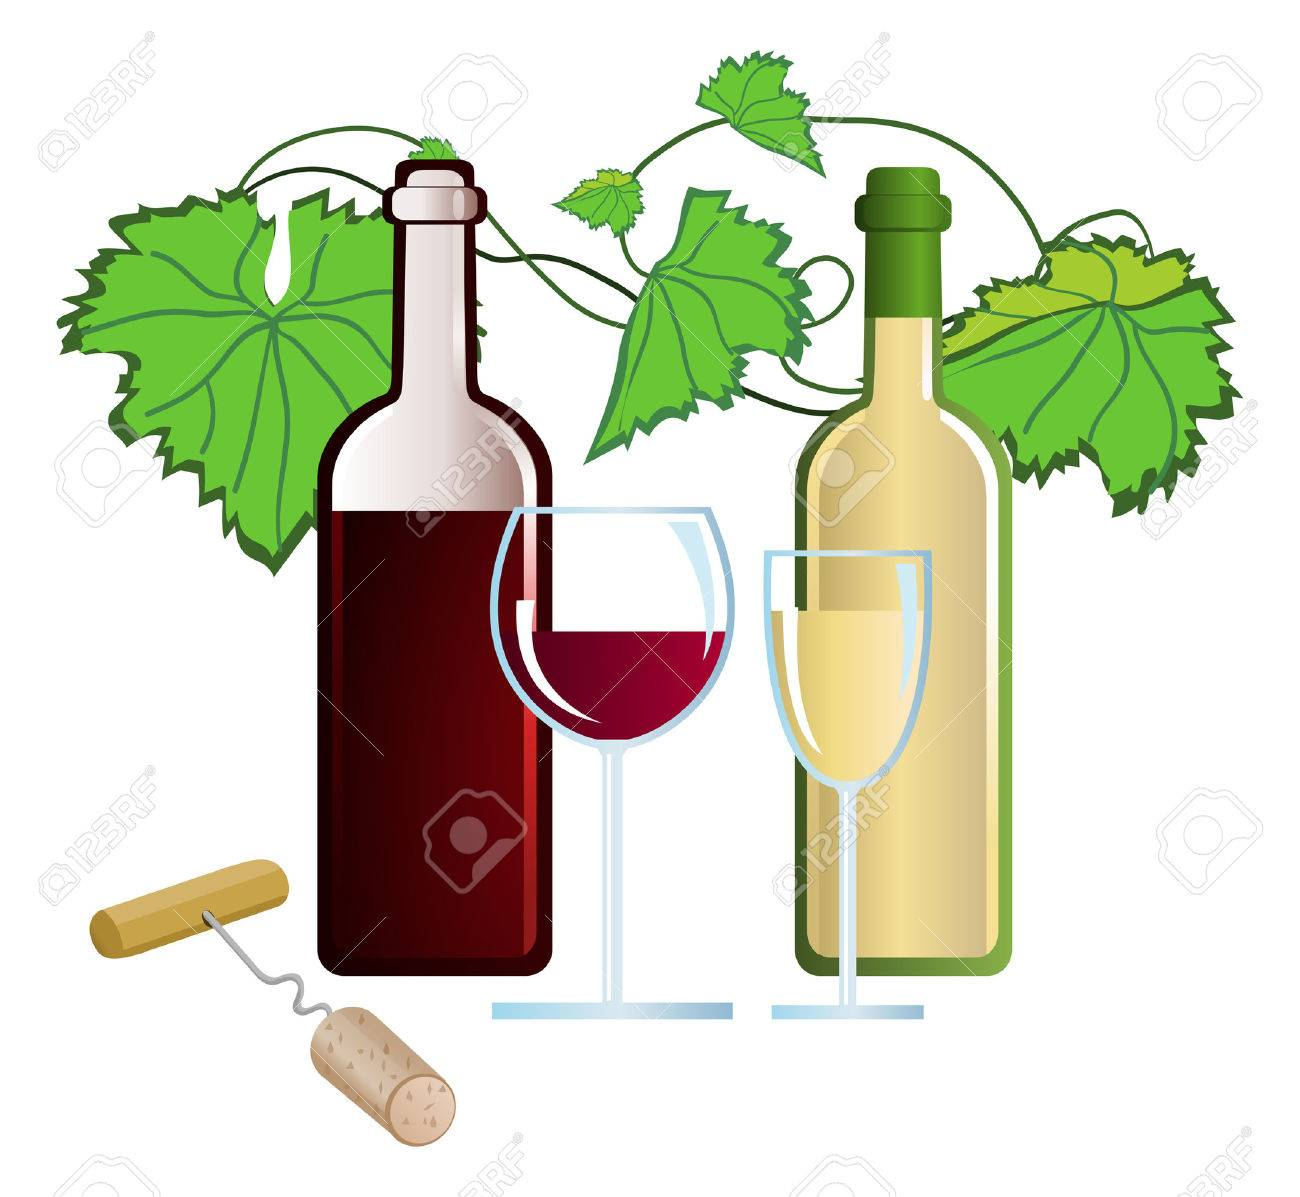 clip arts of wine and corkscrew royalty free cliparts vectors and rh 123rf com